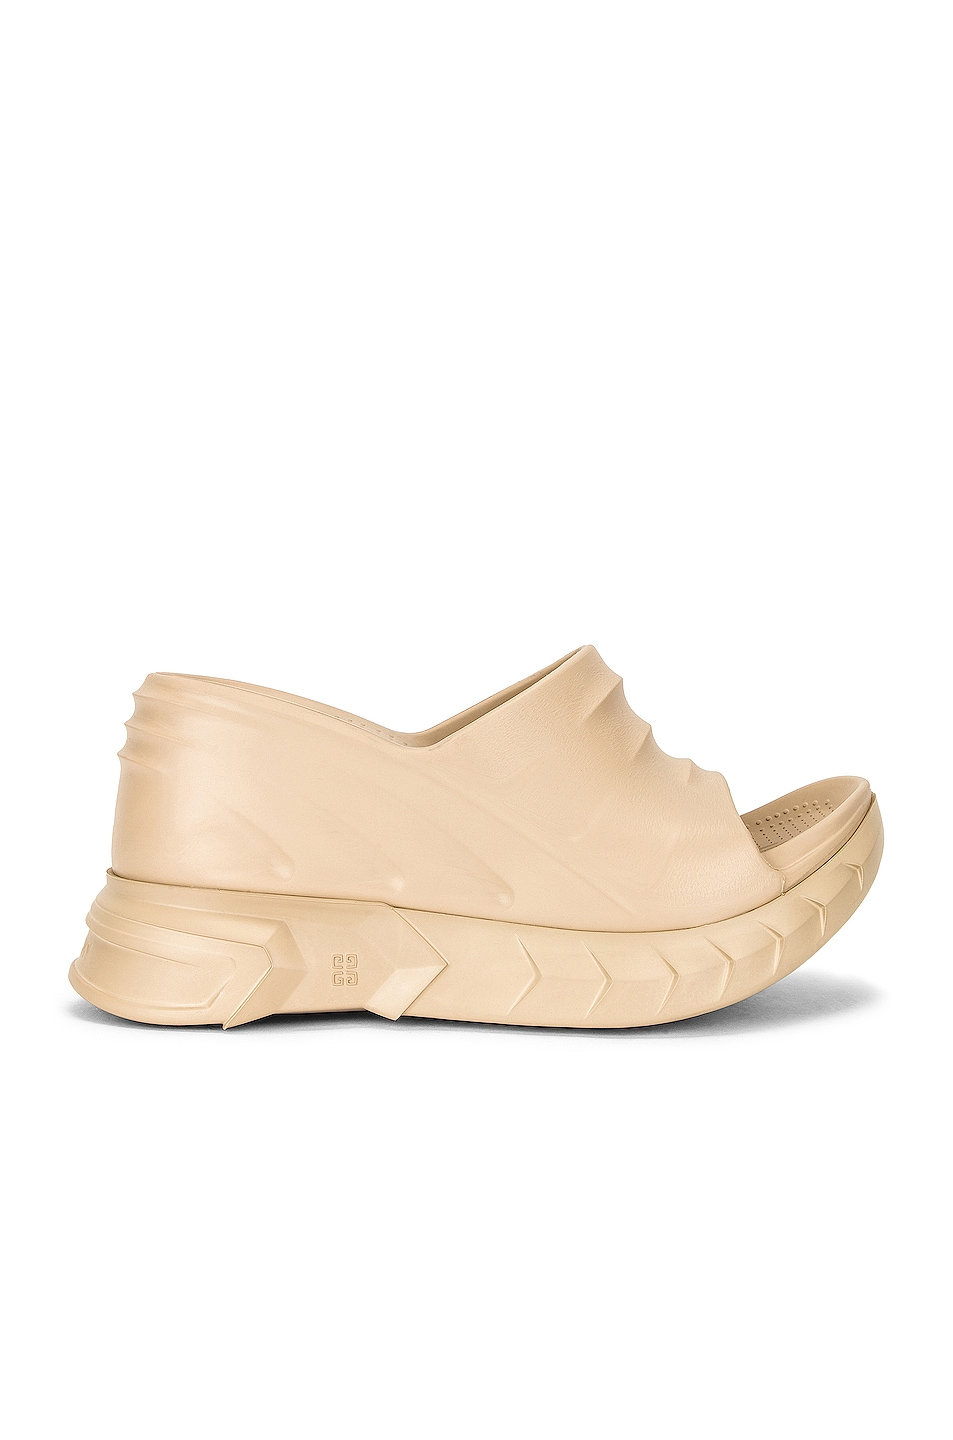 Image 1 of Givenchy Marshmallow Slider Wedge Sandals in Sand